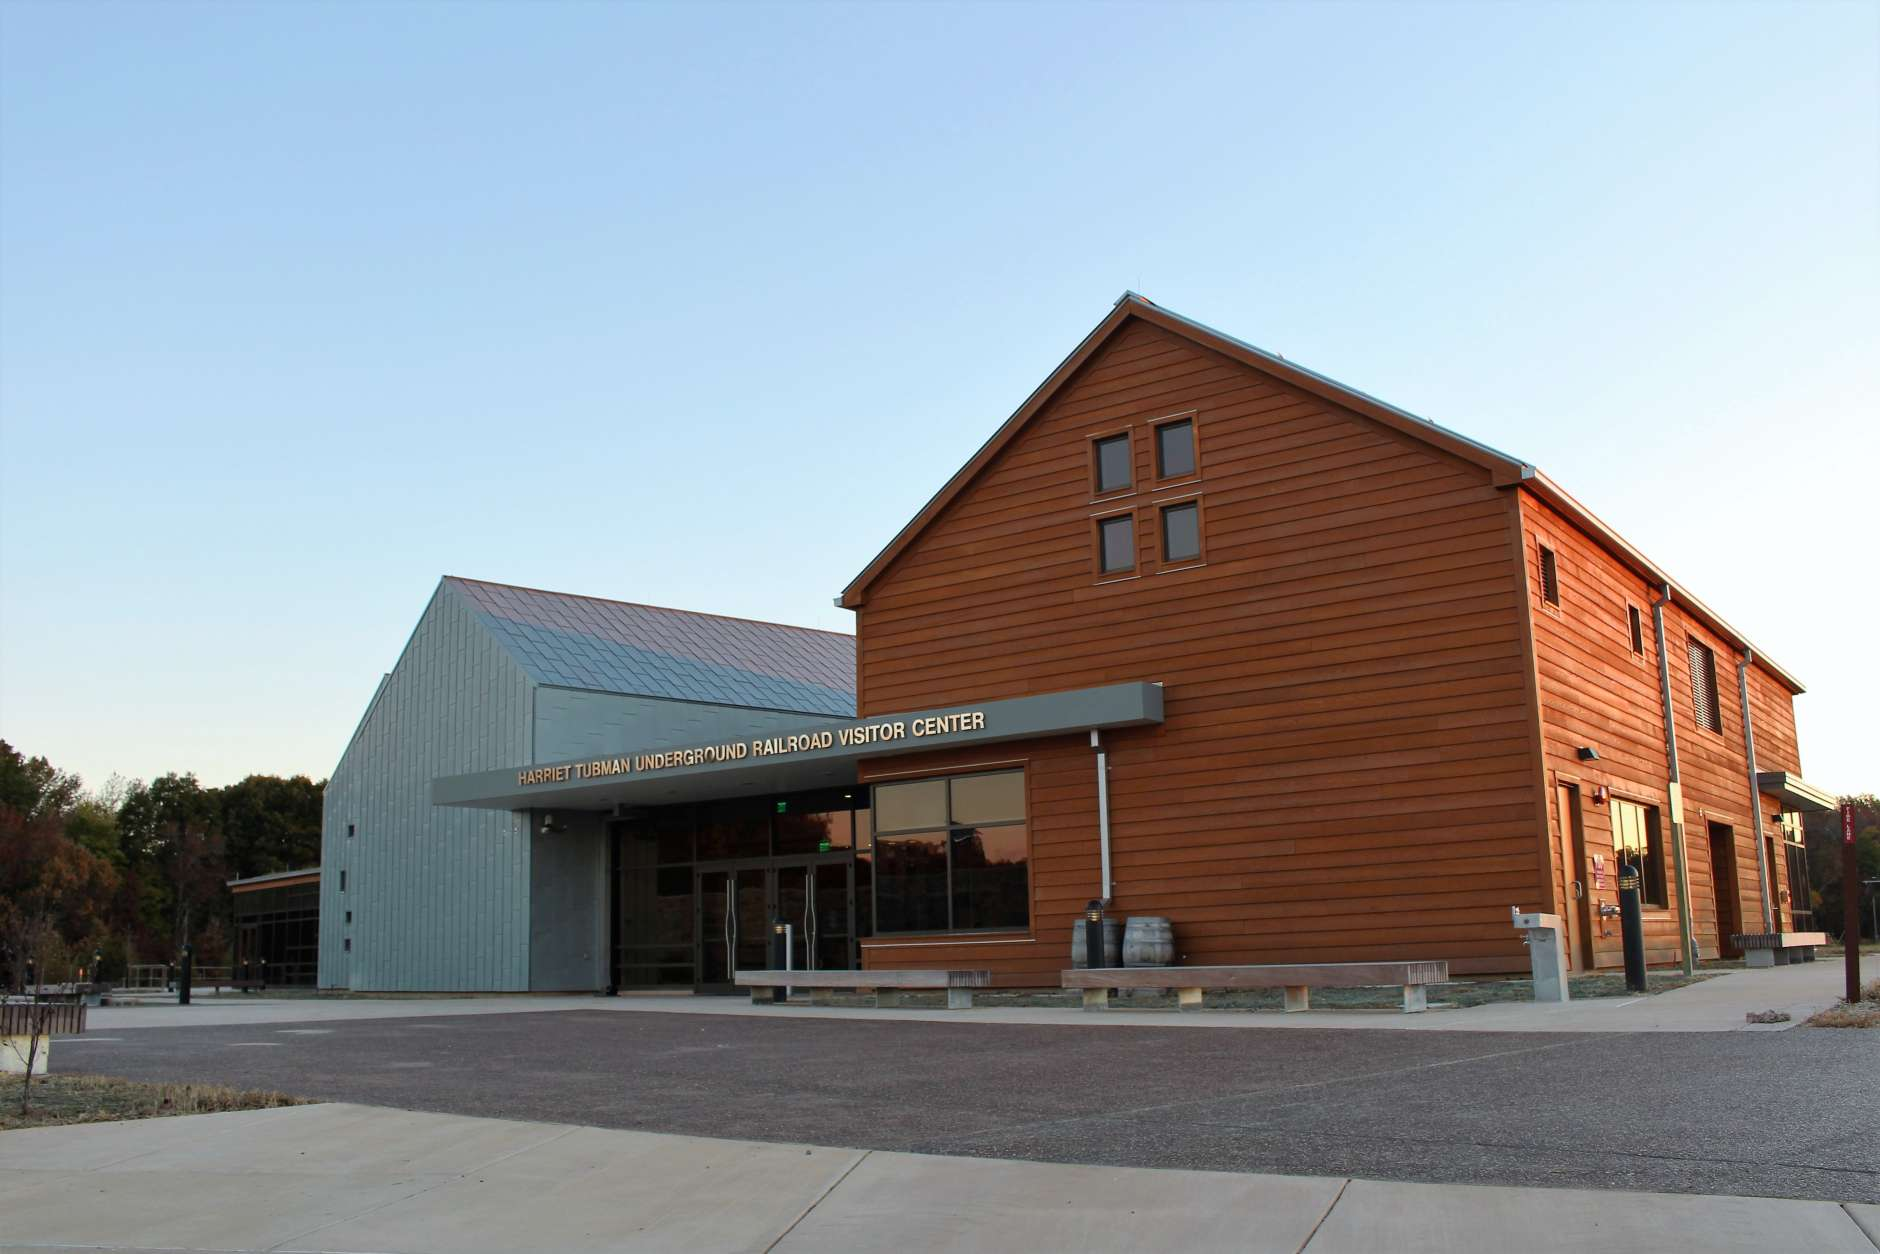 The National Park Service says the front of the visitors center is oriented to take visitors from the red timber of Harriet Tubman's youth on the southern end of the building to the possibilities of freedom offered in the north. (NPS Photo/ Beth Parnicza)